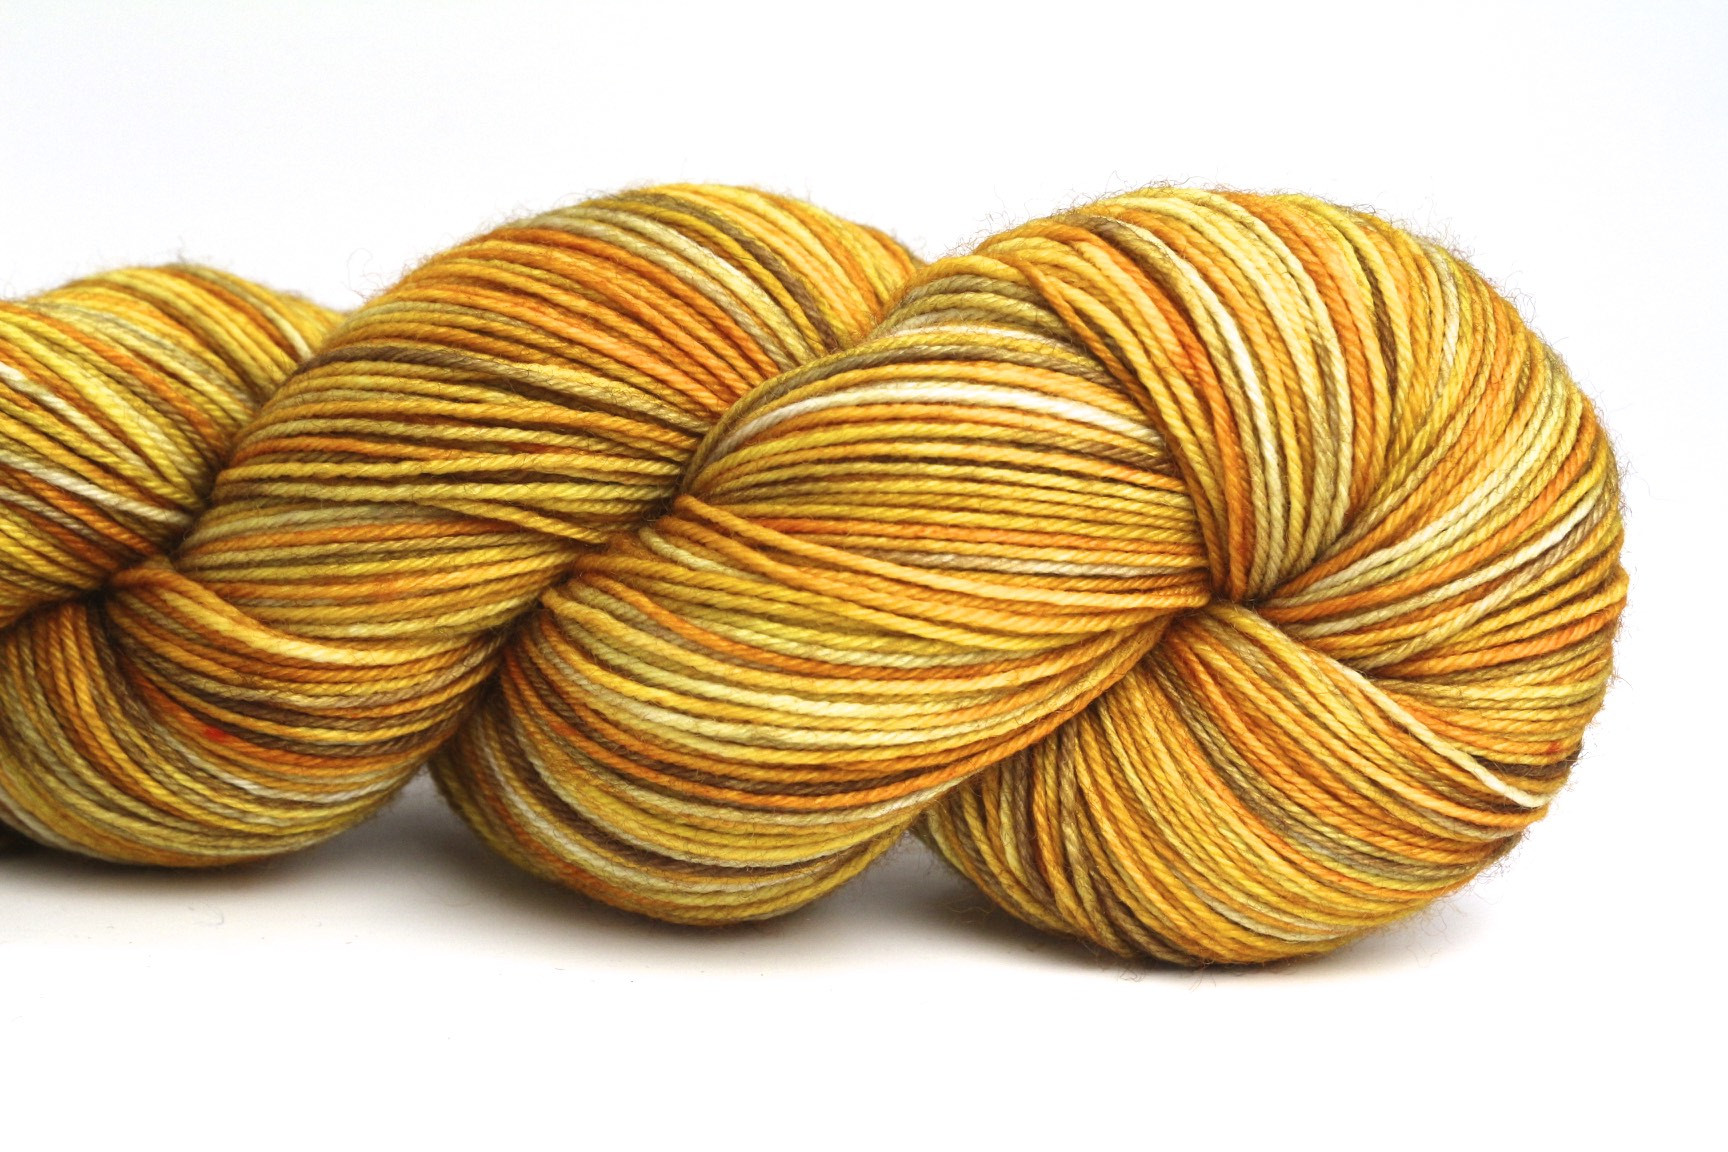 New Repeatable Colorways A G On Yarn Yarn Companies Of Great 45 Images Yarn Companies